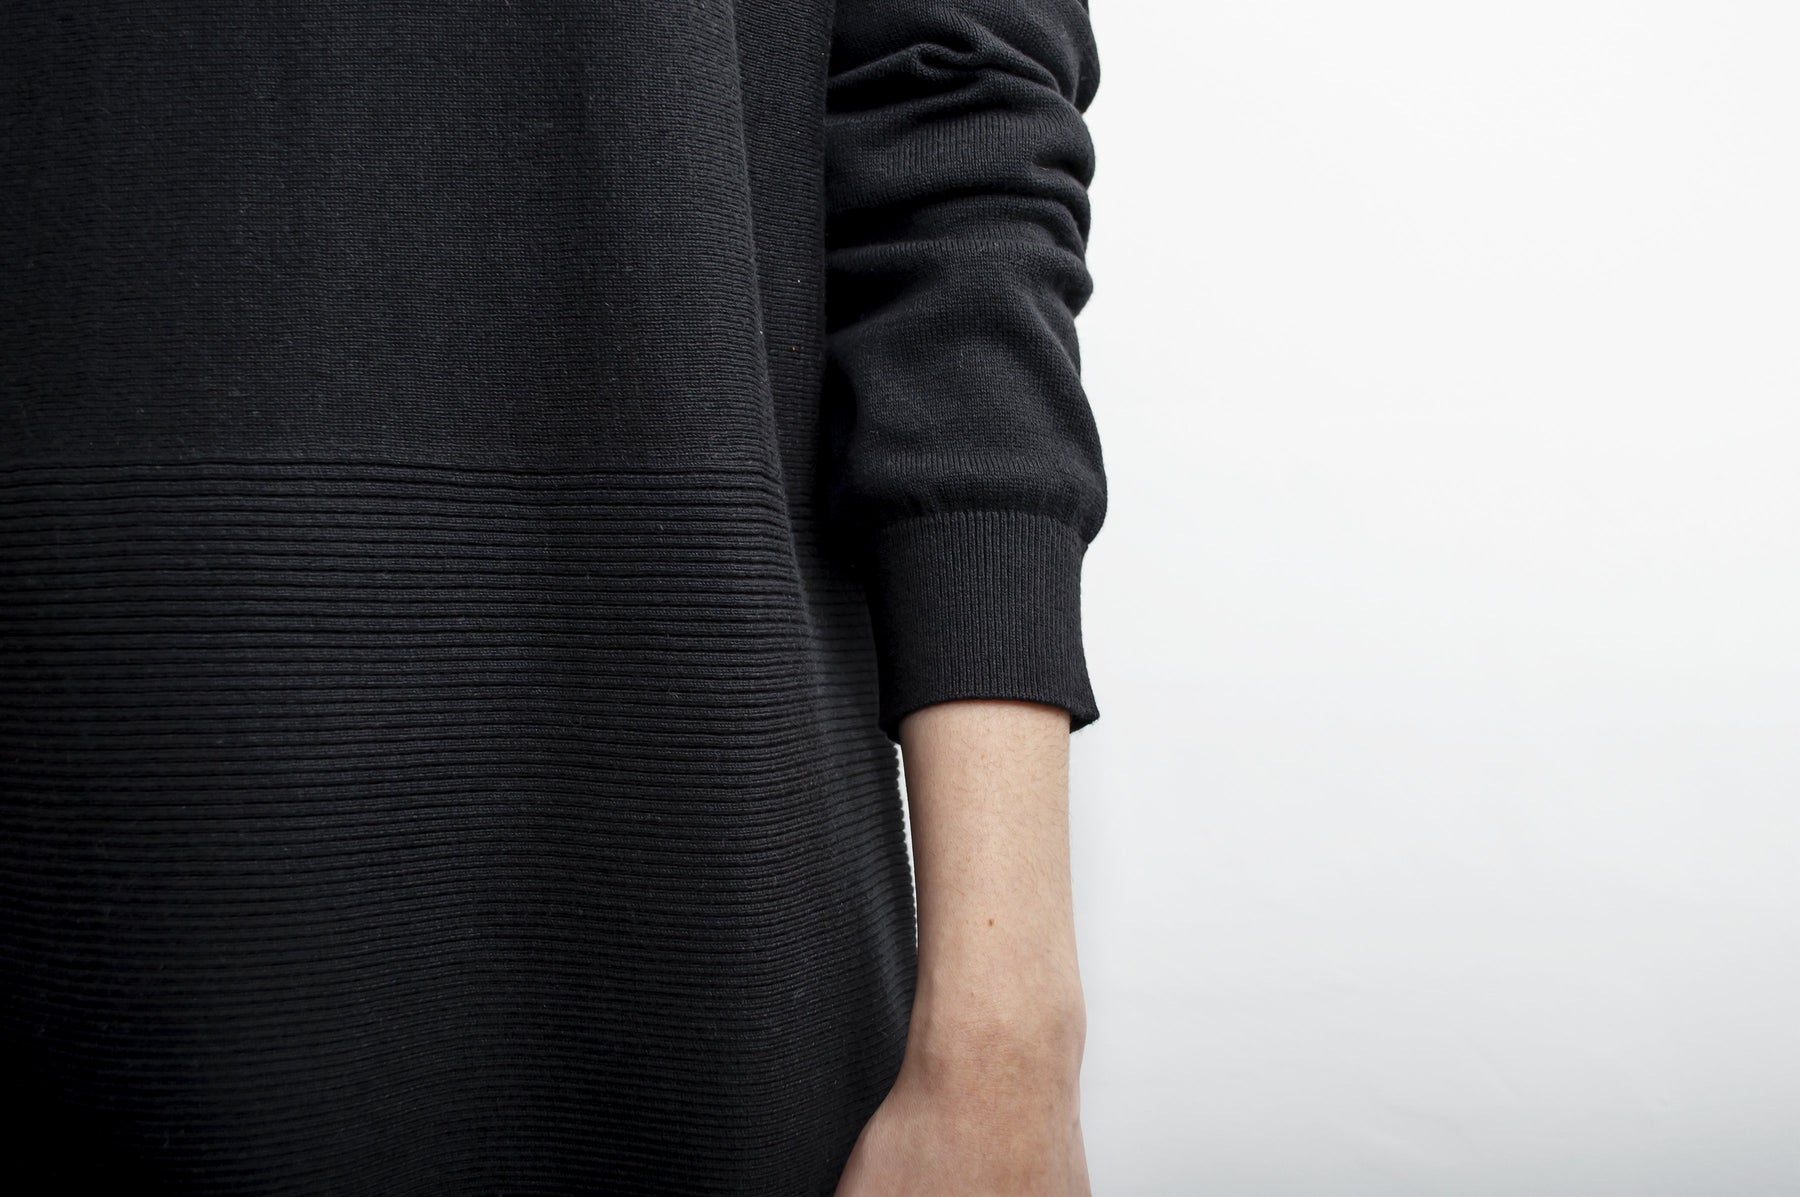 Black crew neck sweater ribbed detail